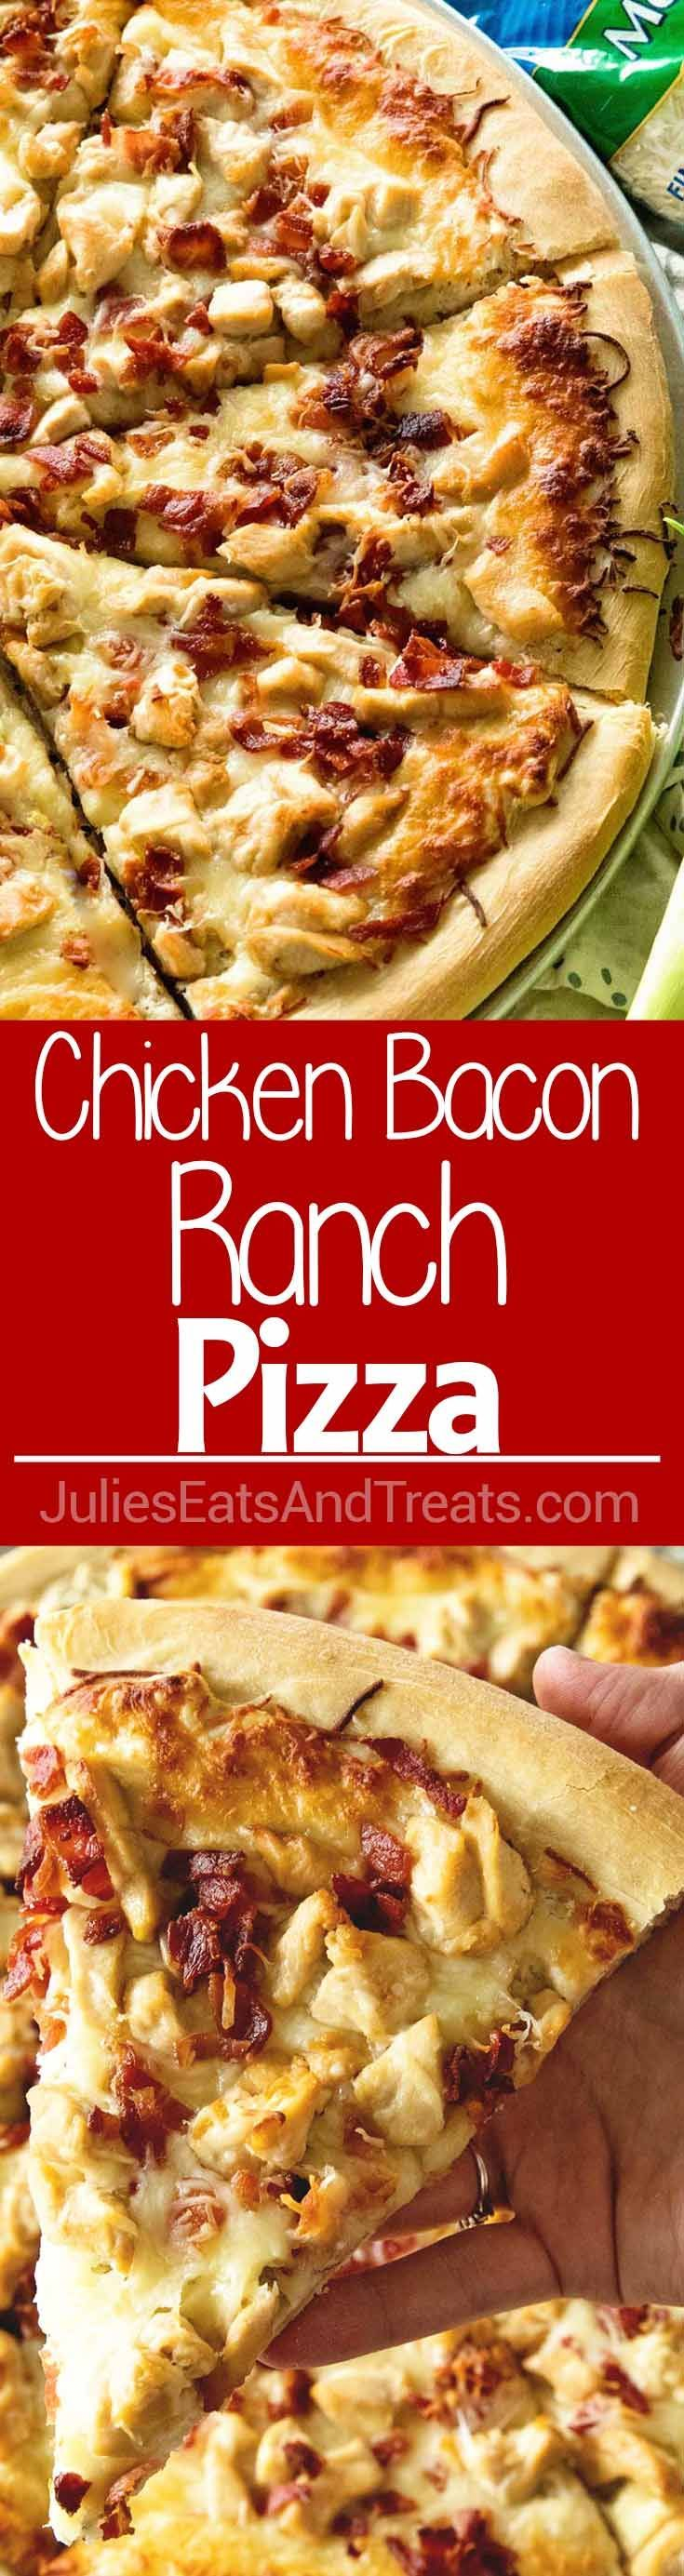 Chicken Bacon Ranch Pizza ~ Delicious Homemade Pizza Piled with a Creamy Ranch Sauce, Chicken, Bacon and Cheese! Perfect for Pizza Nights at Home! via @julieseats